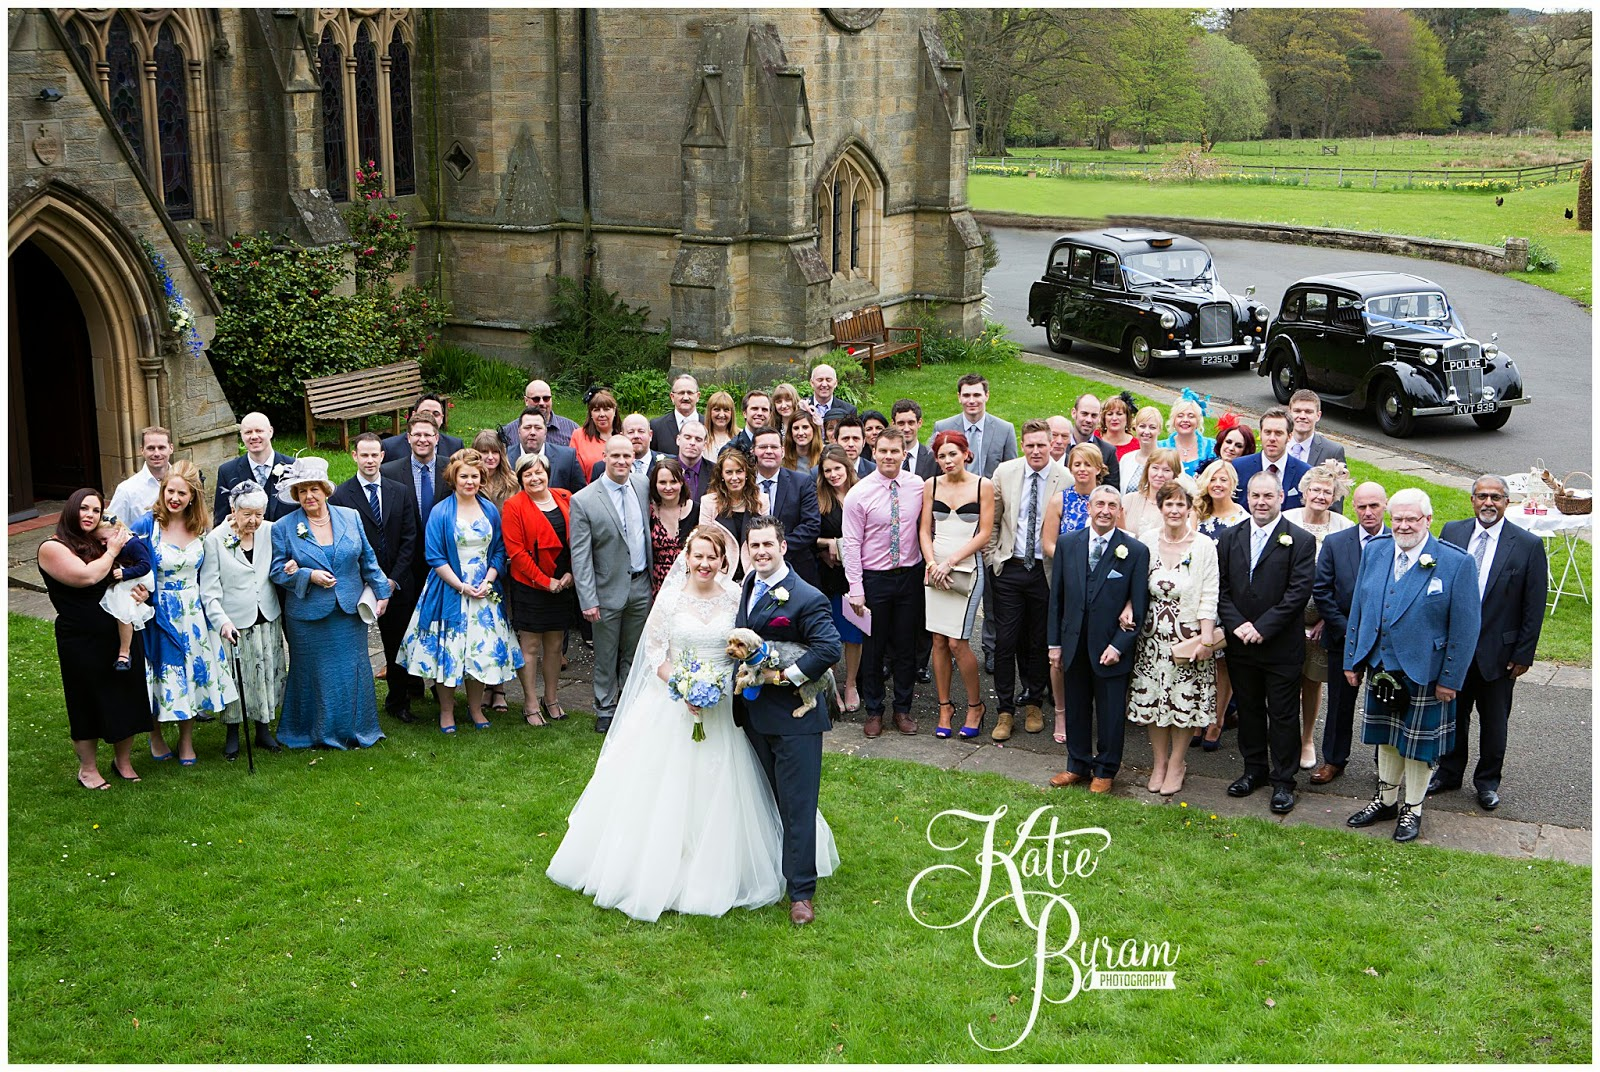 minsteracres wedding, lord crewe arms wedding, dog at wedding, scoops and smiles, katie byram photography, ice cream van hire newcastle, newcastle wedding photography, relaxed wedding photography, quirky, 50